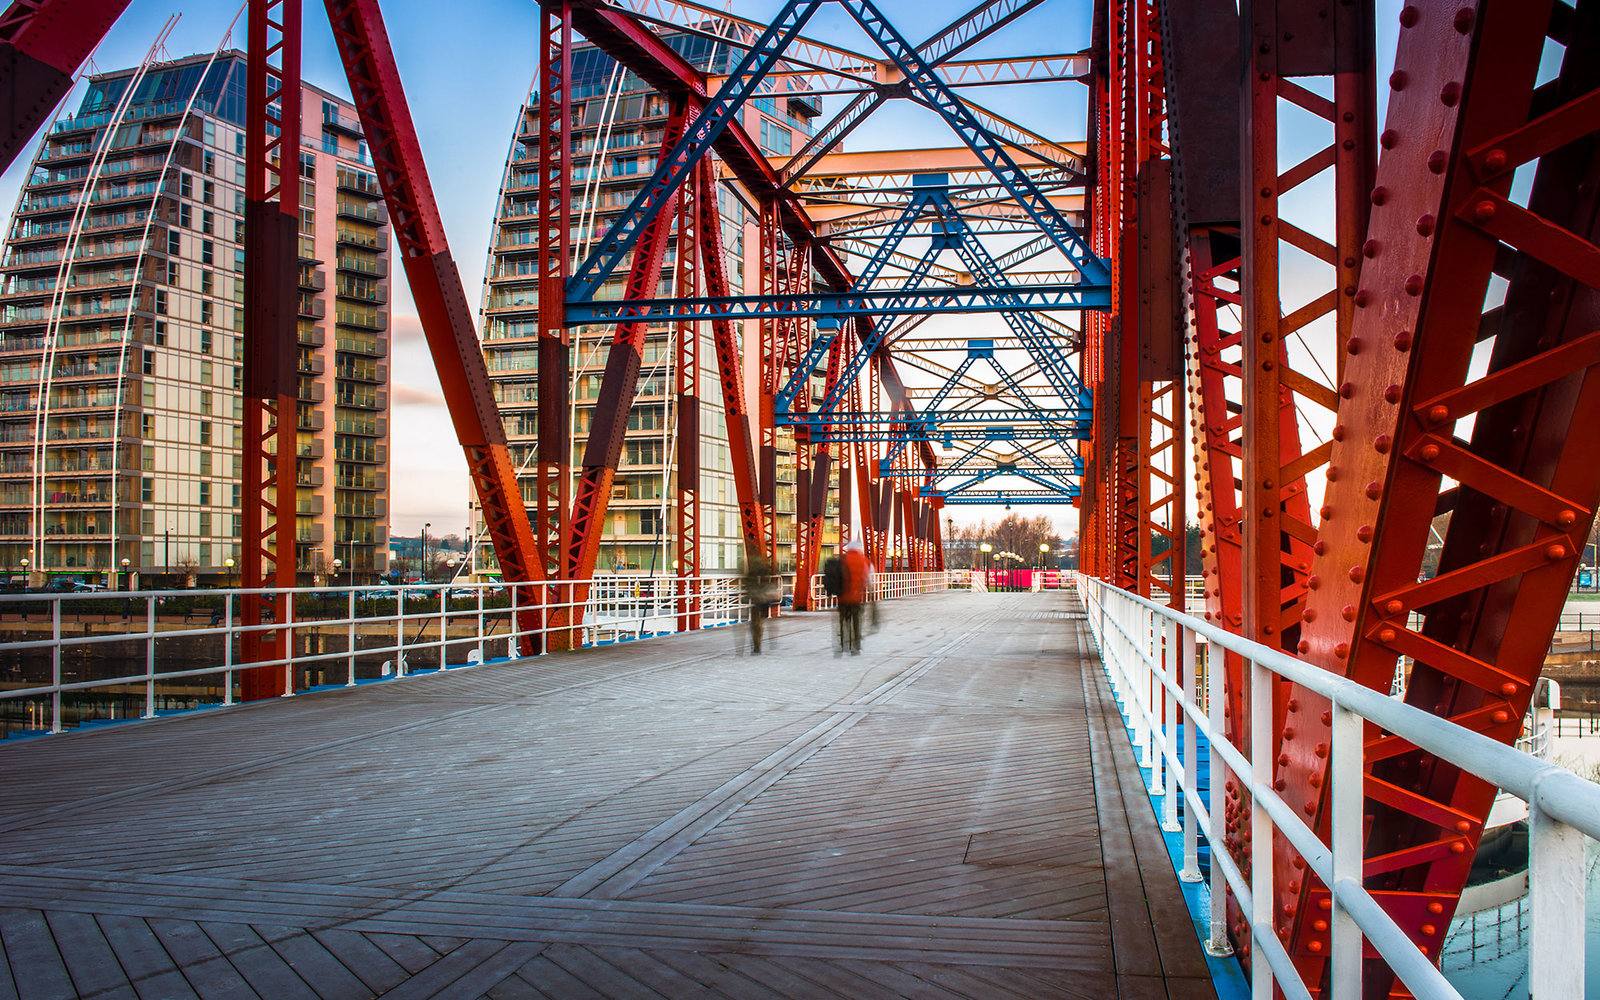 The Detroit Bridge in Salford Quays, Manchester, England; Shutterstock ID 277359257